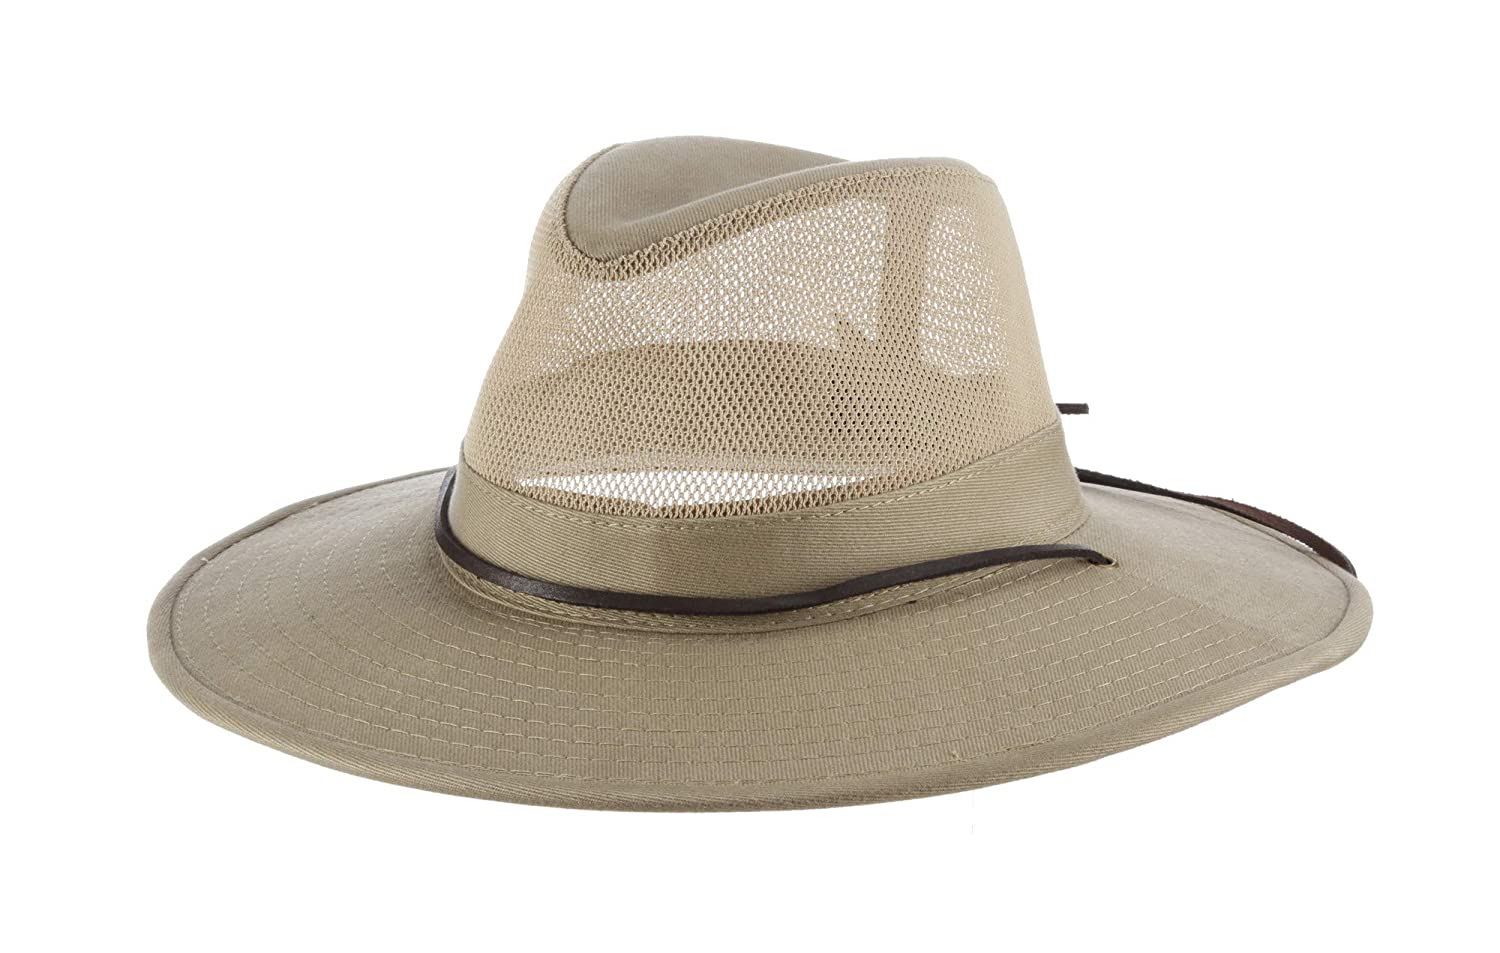 ebe6e71bff8f4 Dorfman Pacific Men s Brushed Twill-and-Mesh Safari Hat with Genuine  Leather Trim at Amazon Men s Clothing store  Dorfman Pacific Hats For Men